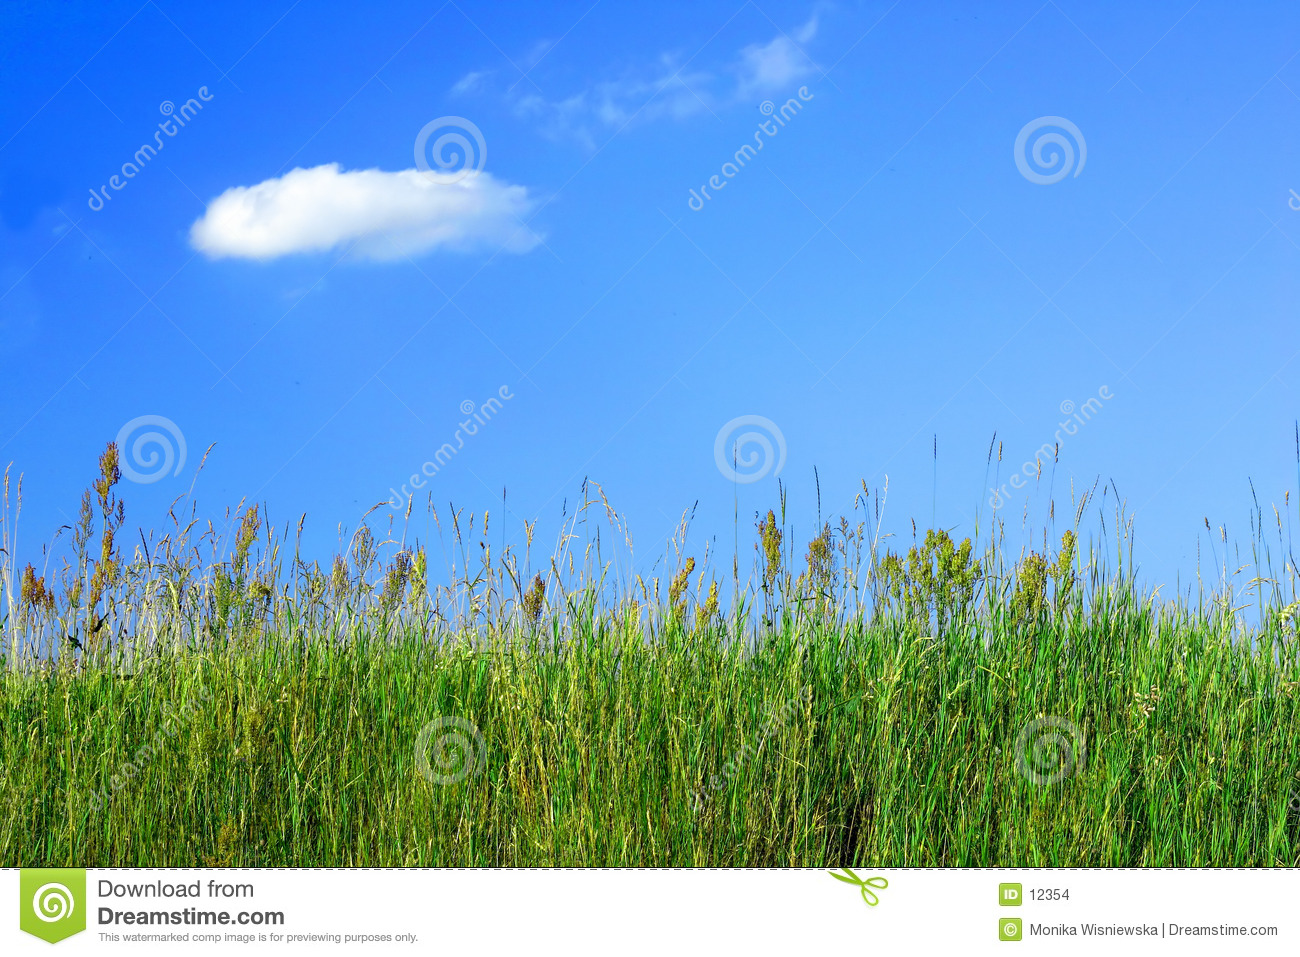 Meadow grass and a blue sky